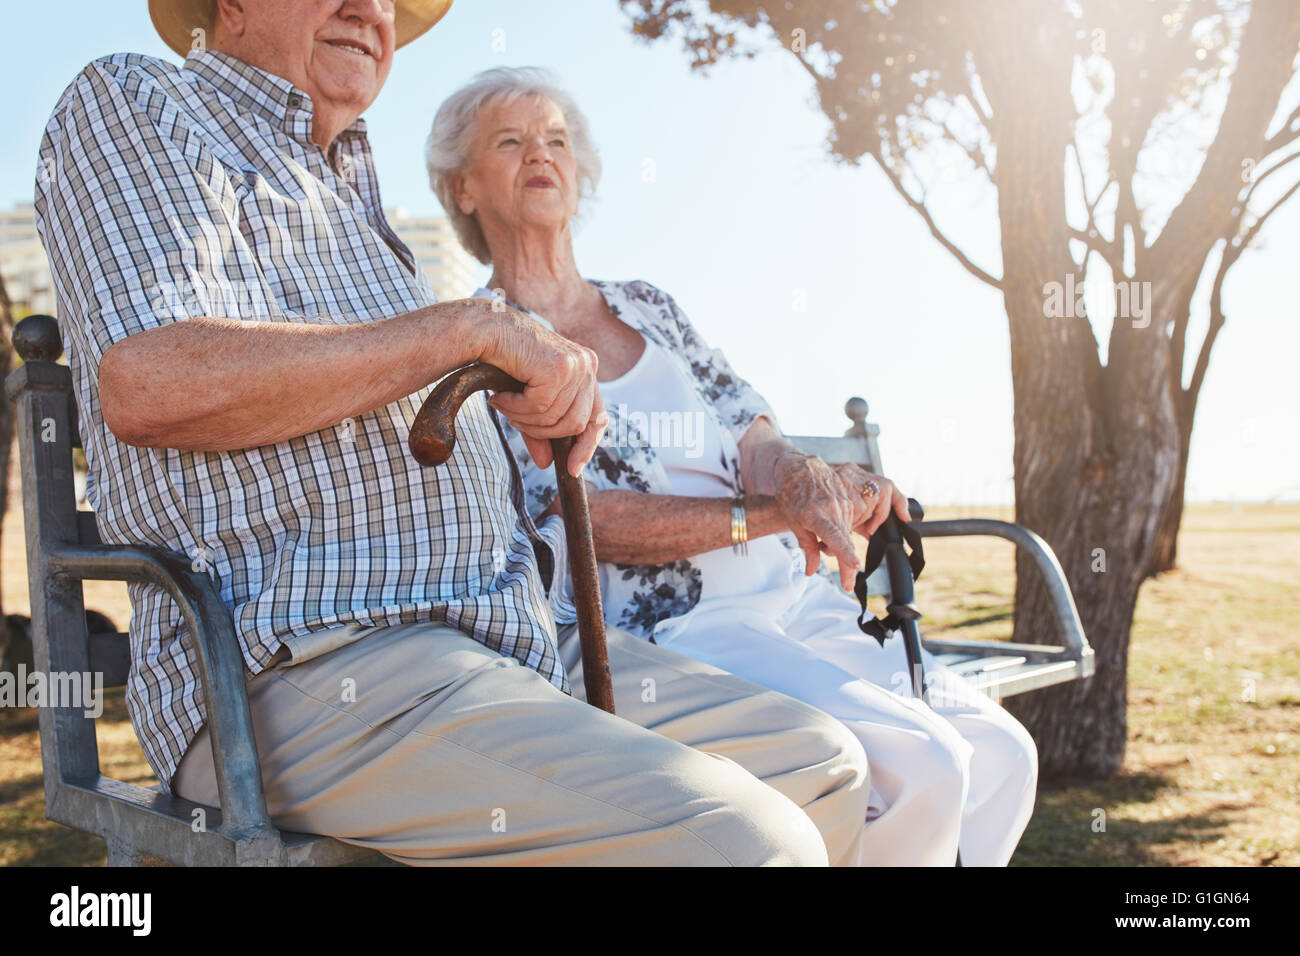 Senior couple sitting on a park bench with walking stick. Elderly couple relaxing outdoors on a summer day. - Stock Image